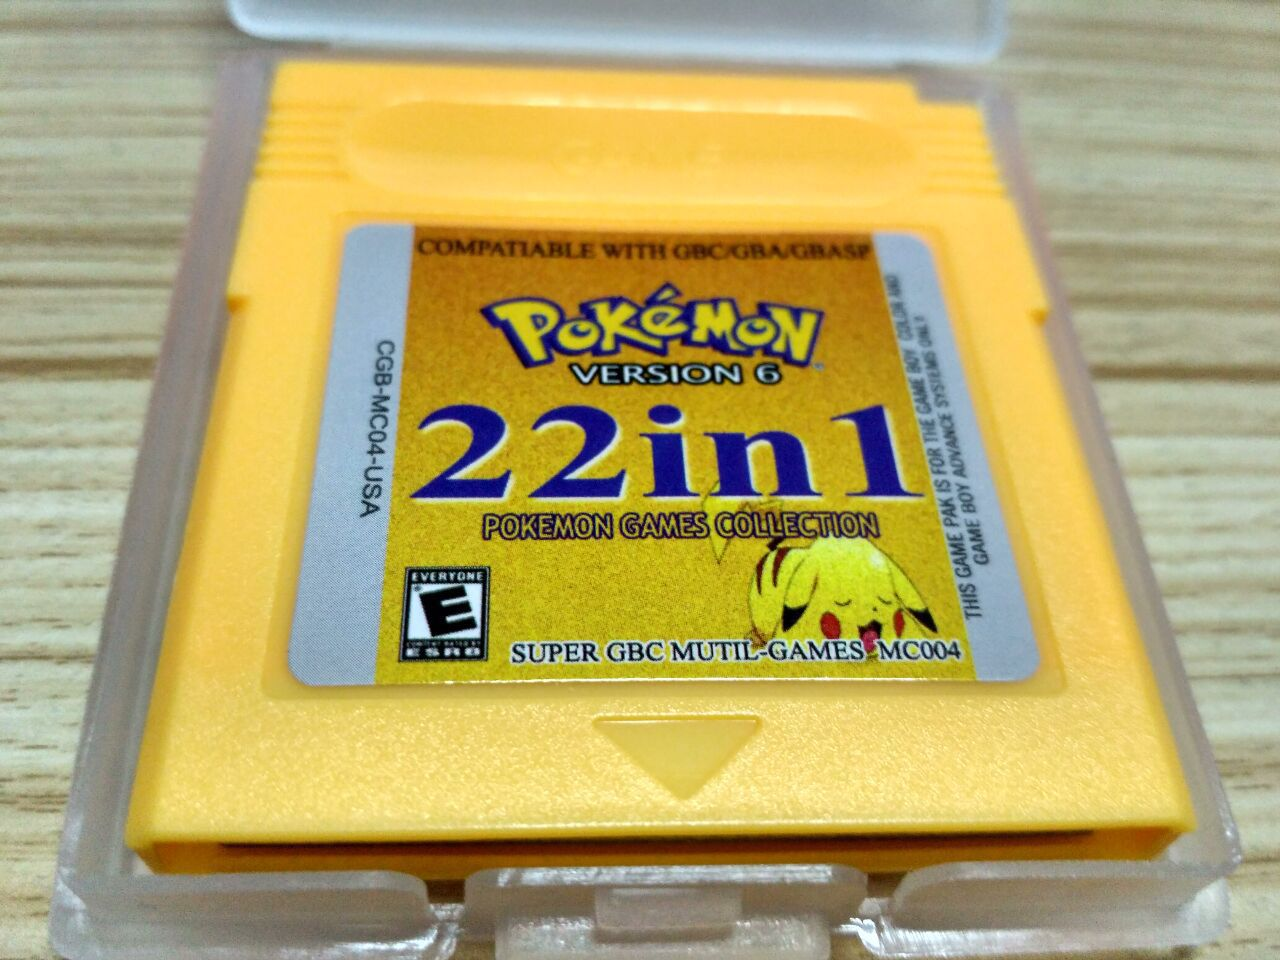 Pokemon Series NDSL GB GBC GBM GBA  22 In 1 Collect Video Game Cartridge Console Card Classic Colorful Version English Language